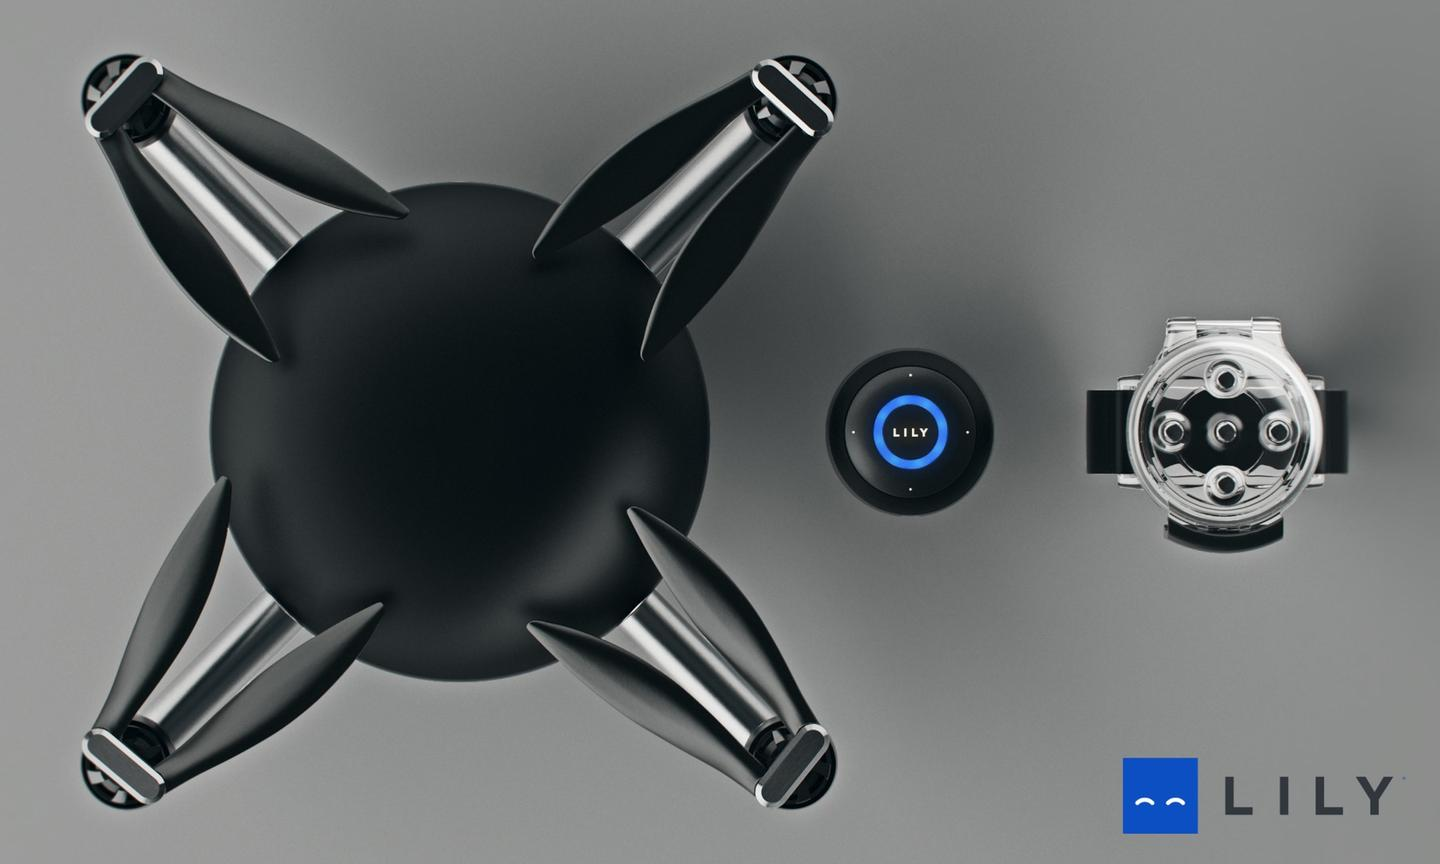 Lily's electronics are housed in a smooth dome fashioned from black polycarbonate